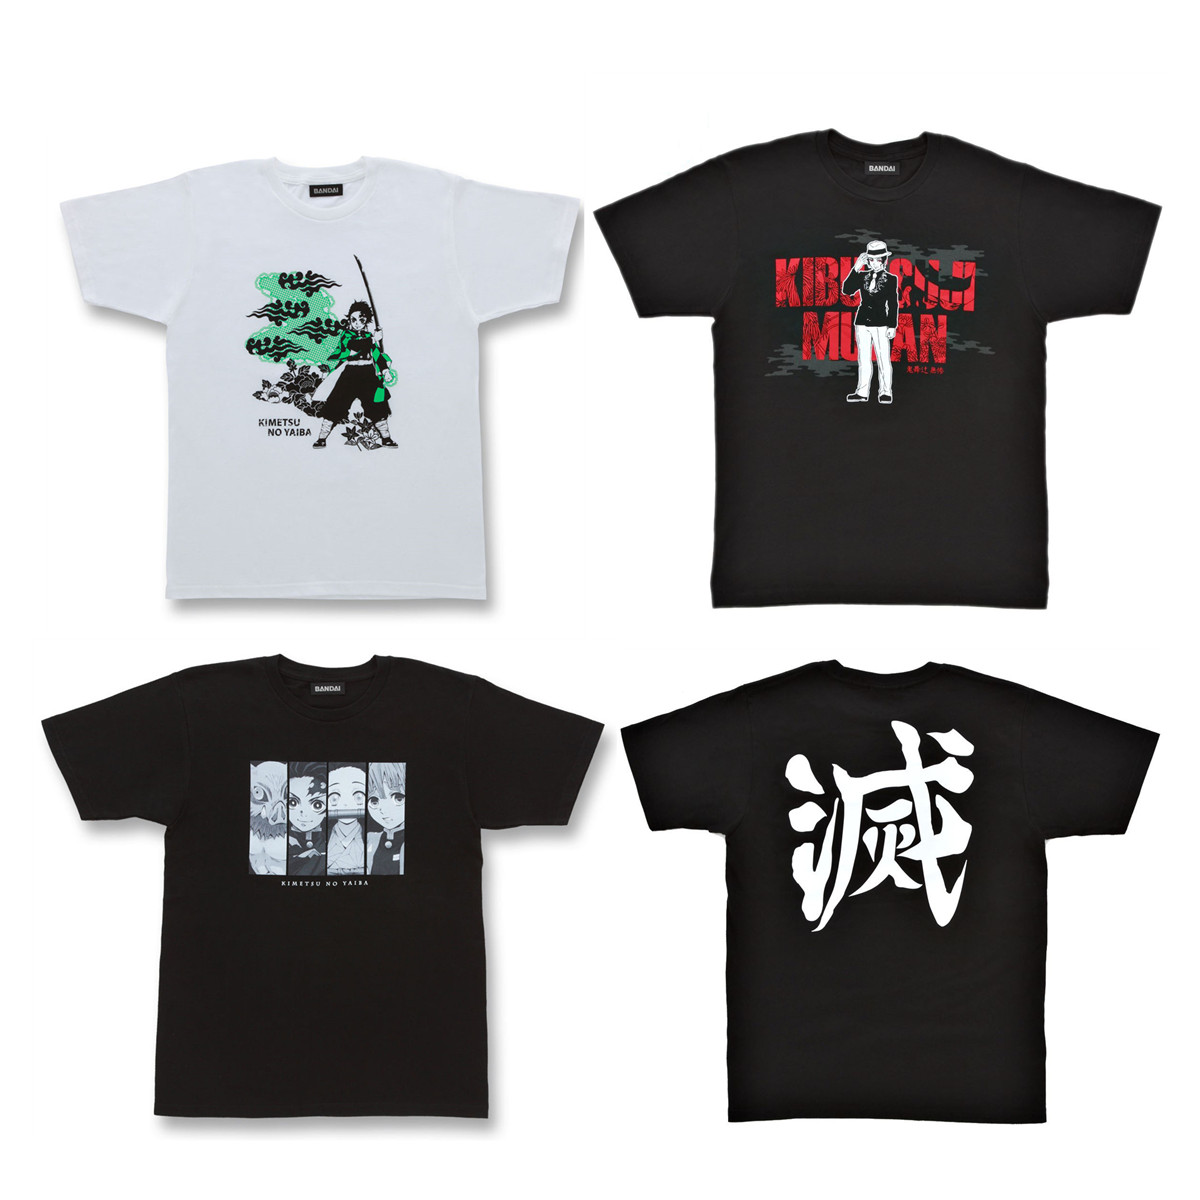 Demon Slayer: Kimetsu no Yaiba T-shirt